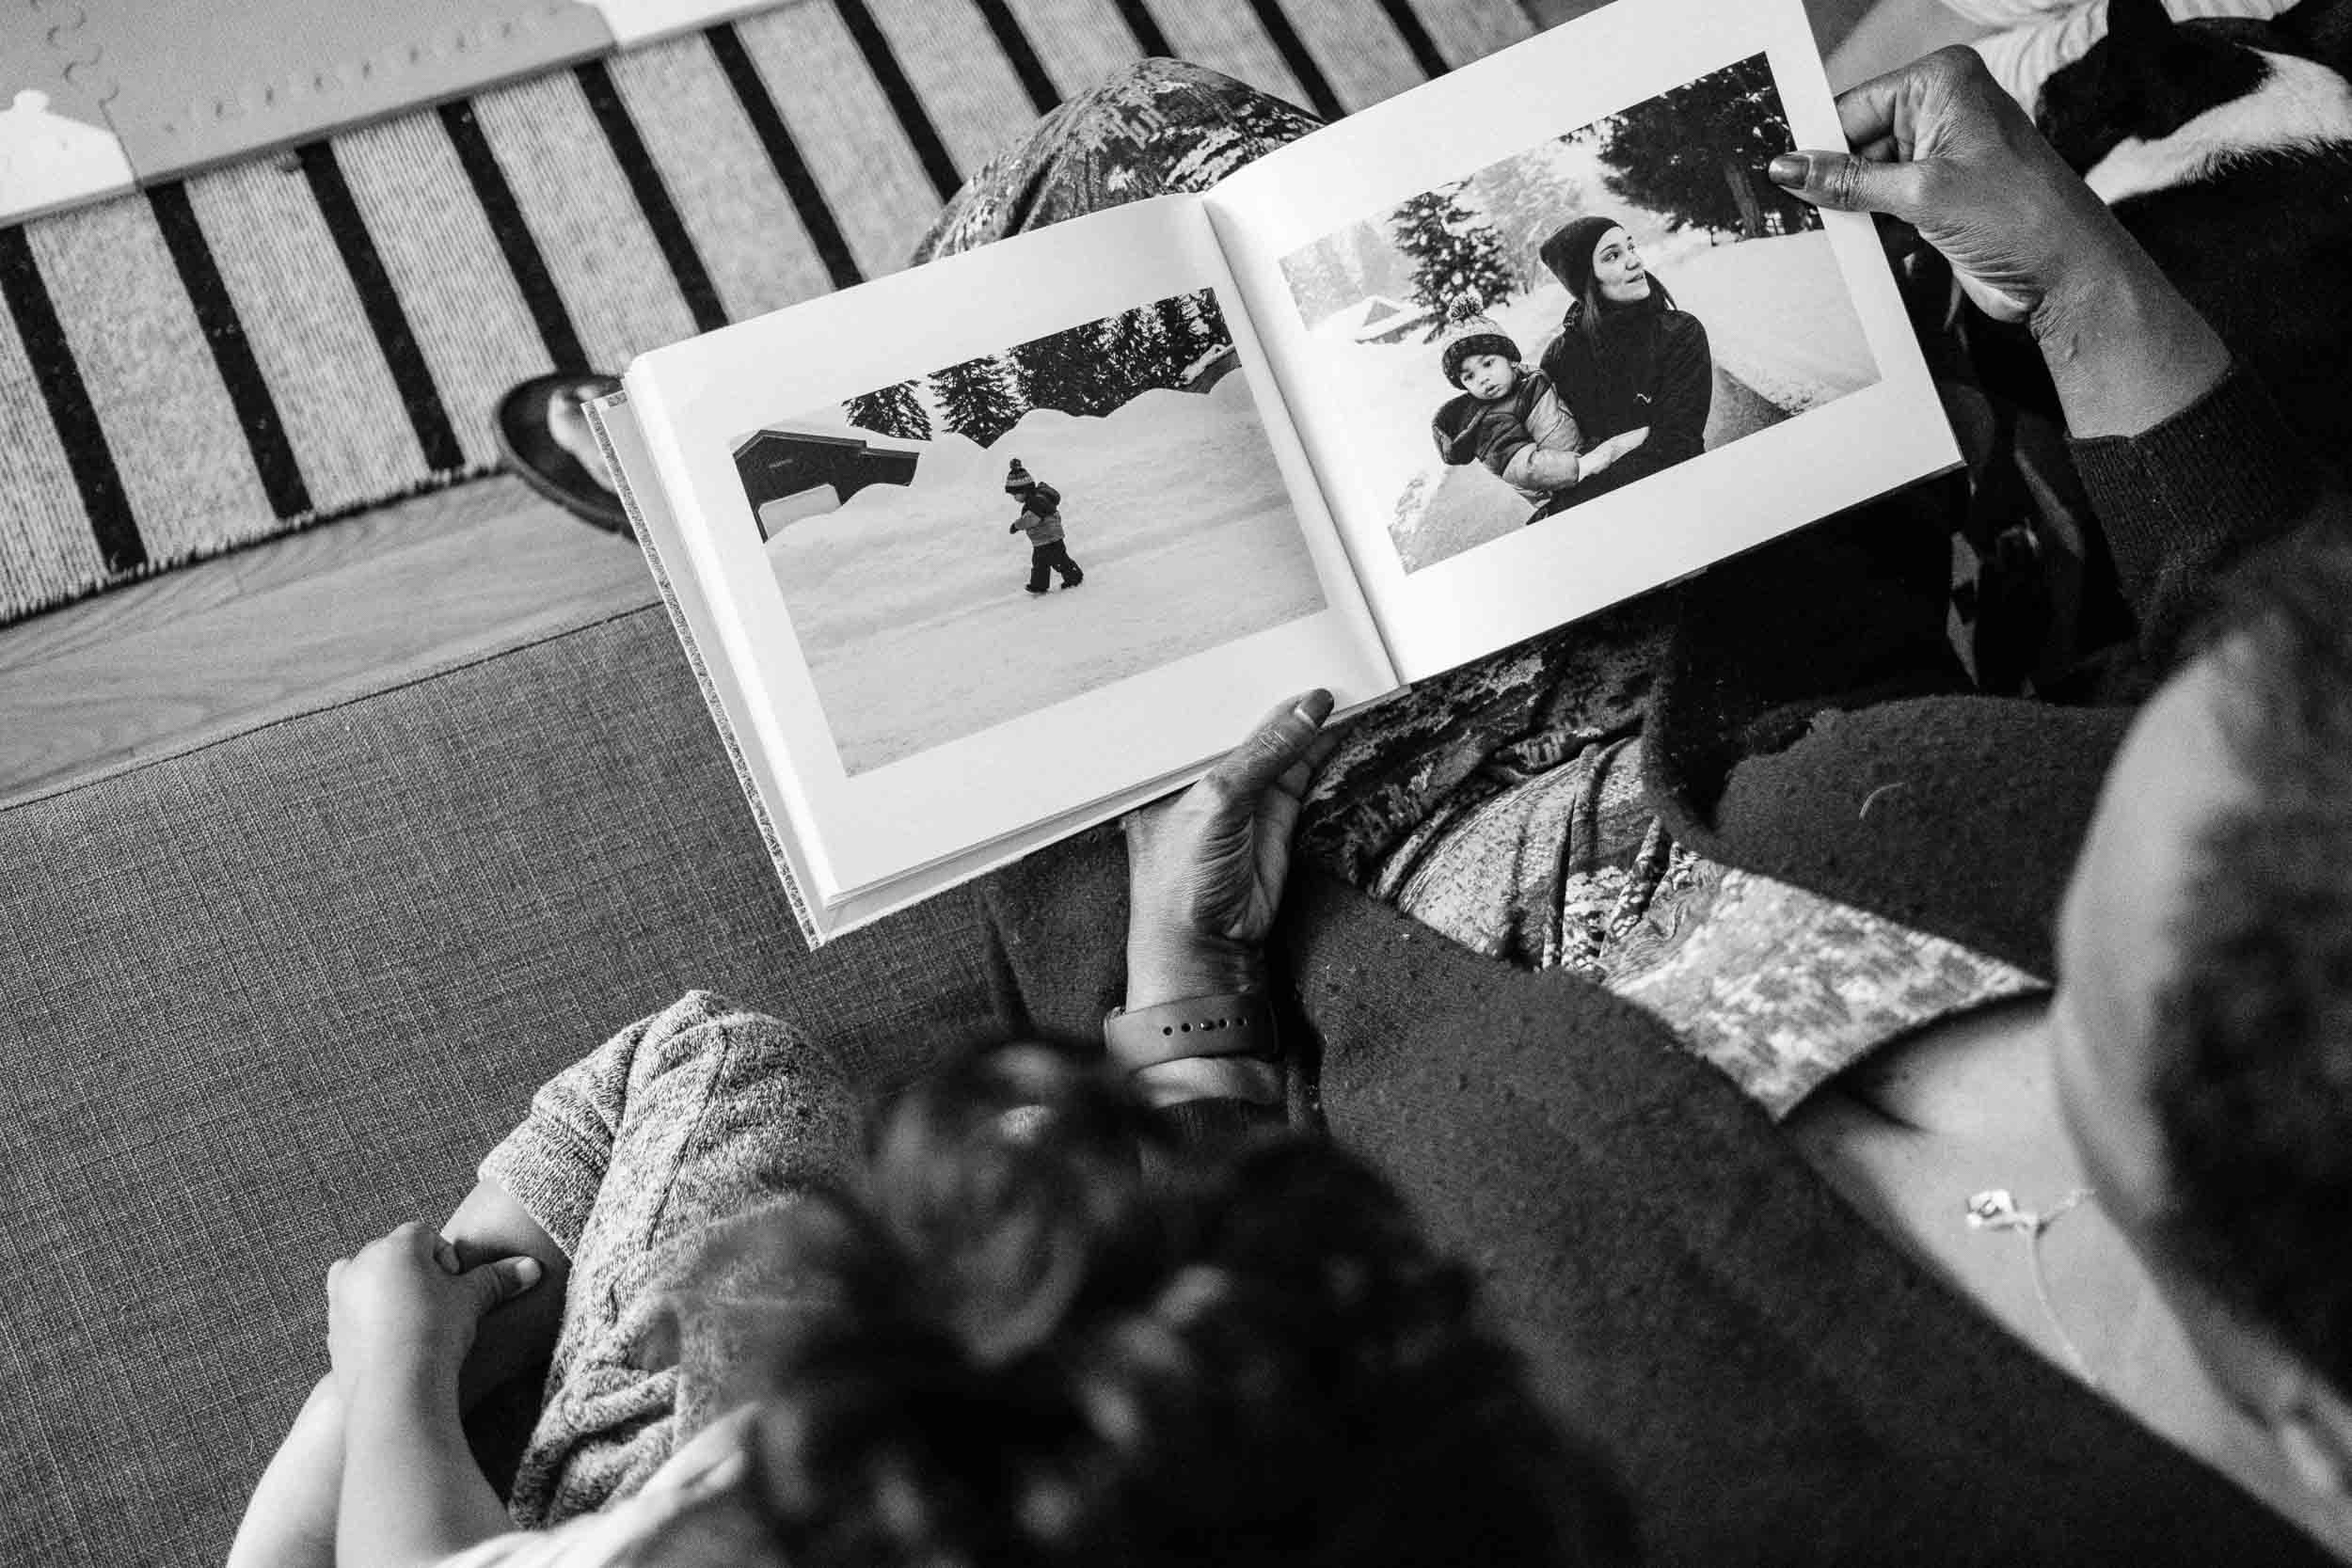 Documenting my family since our son was born. Each year a new photo book is made, Gramma Mimi and our son Theo looking at the latest edition.